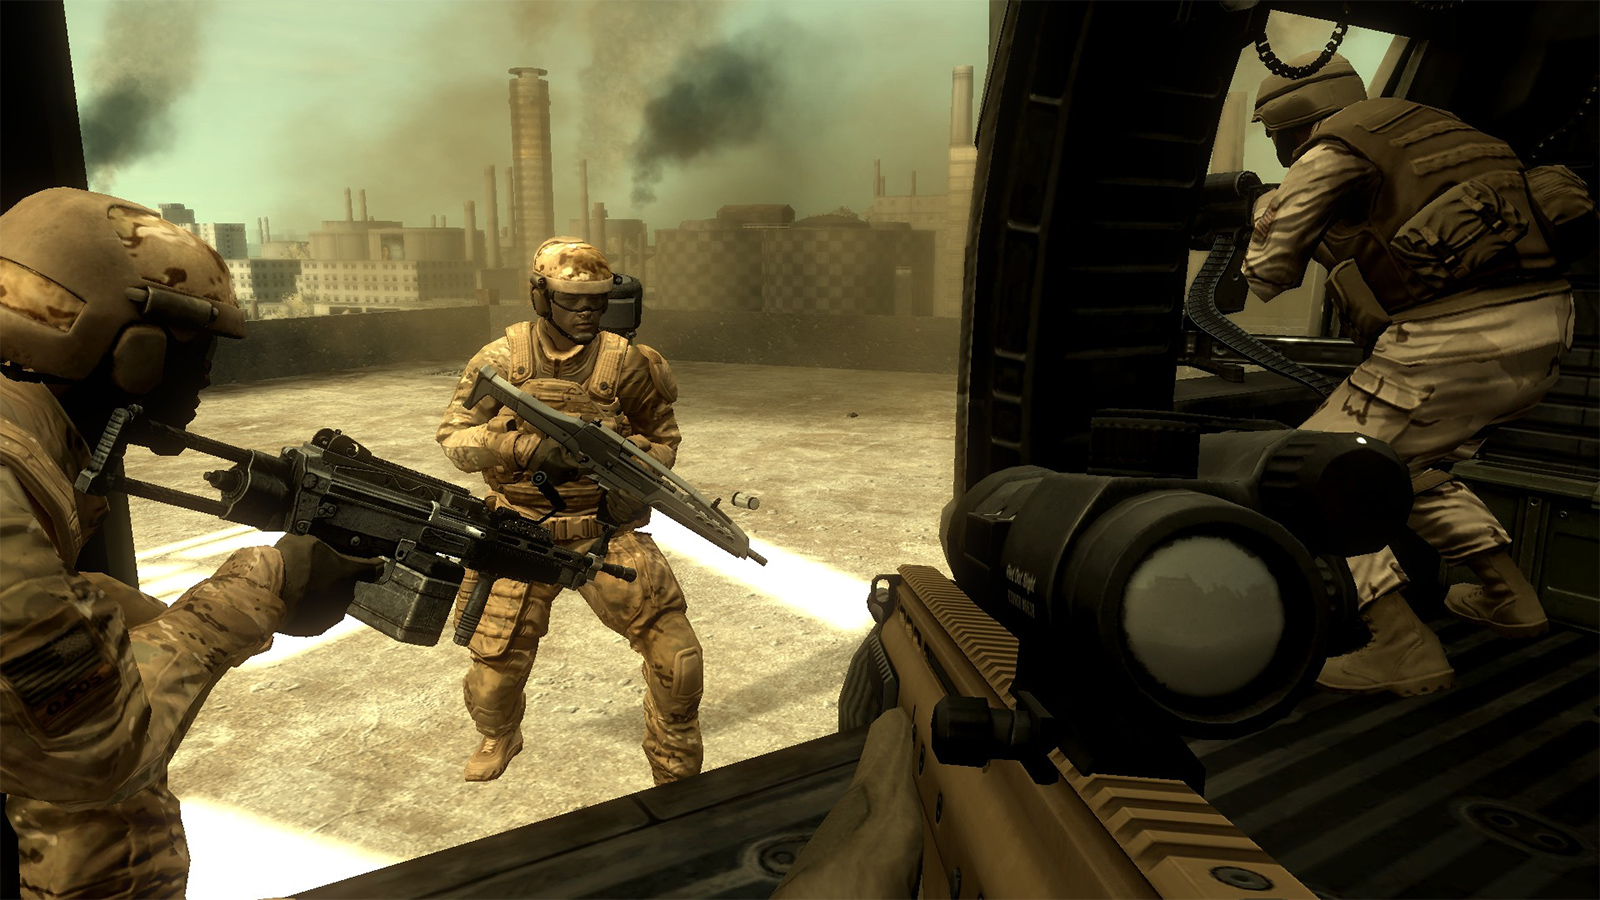 Ghost Recon Advanced Warfighter slides onto the Xbox One backward compatibility list screenshot